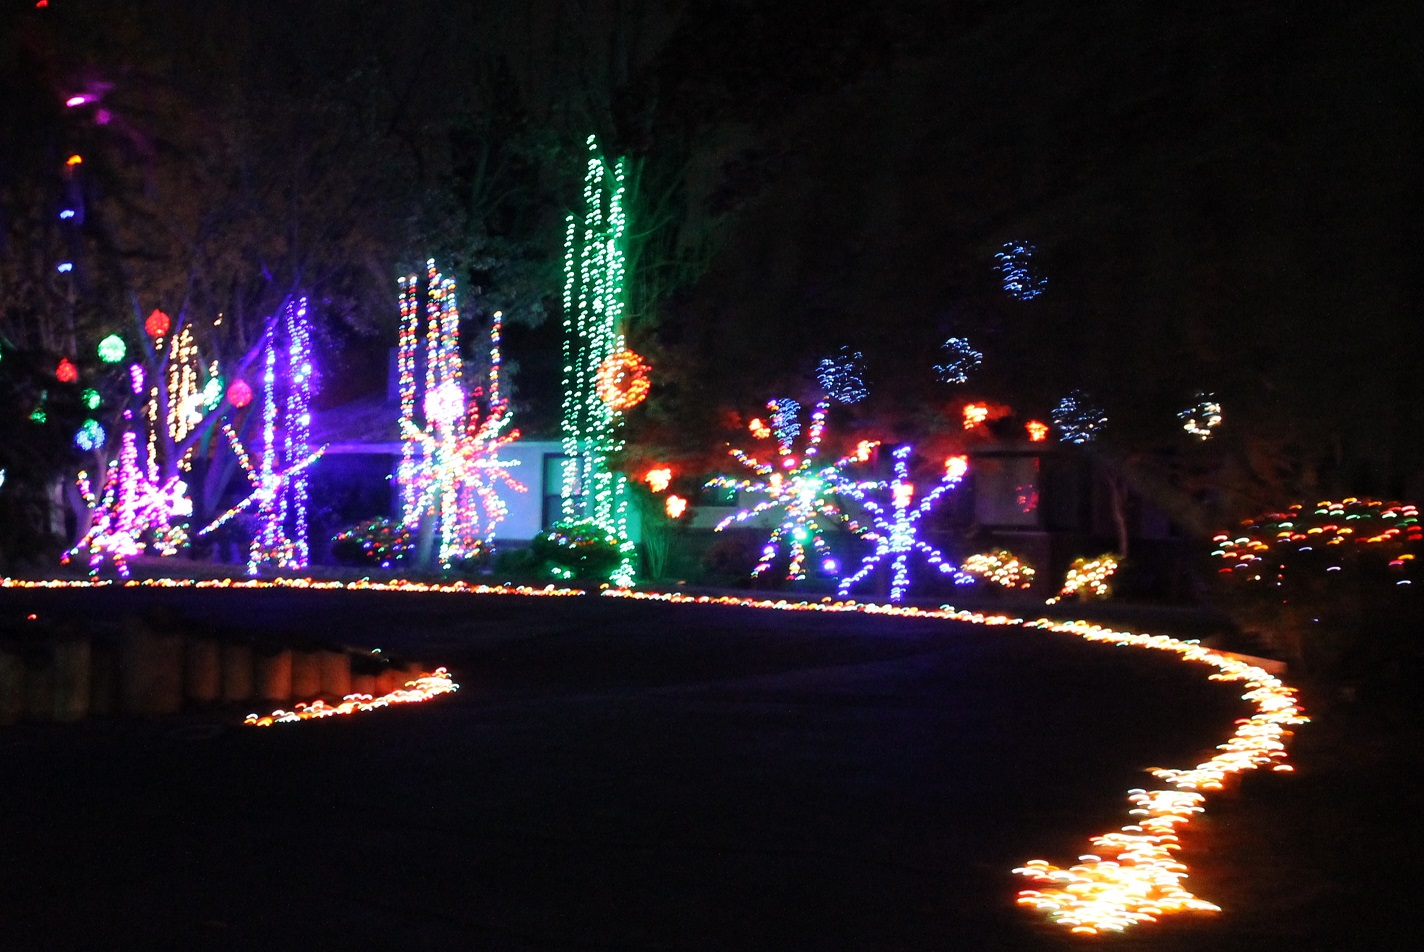 For More Information You Can See Their Facebook Page At: Christmas Tree  Lane Fresno